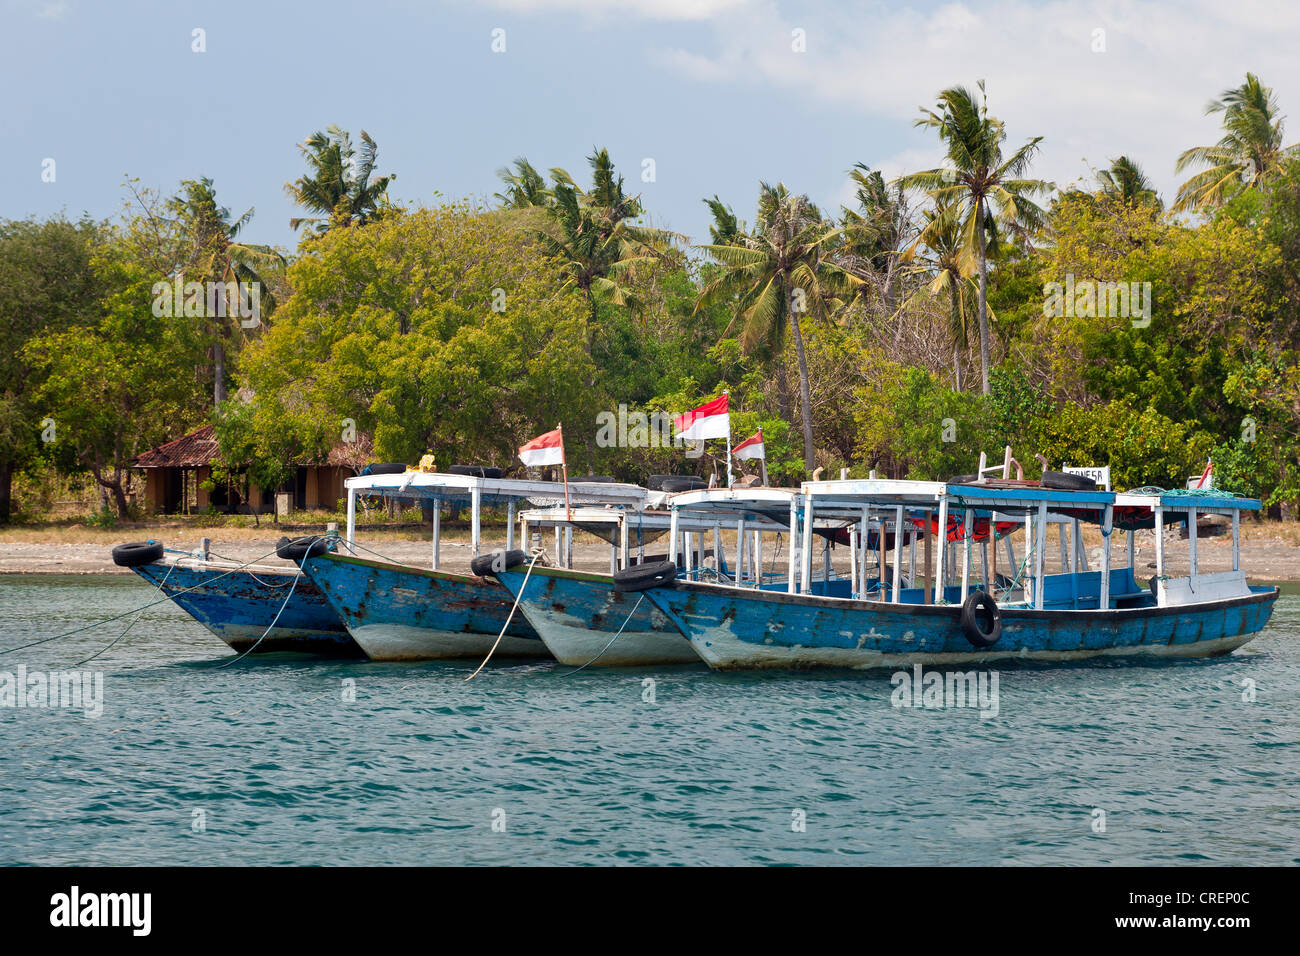 Excursion boats in the harbor of Labuhan Lalang, the starting point to Menjangan Island, West Bali, Bali, Indonesia - Stock Image